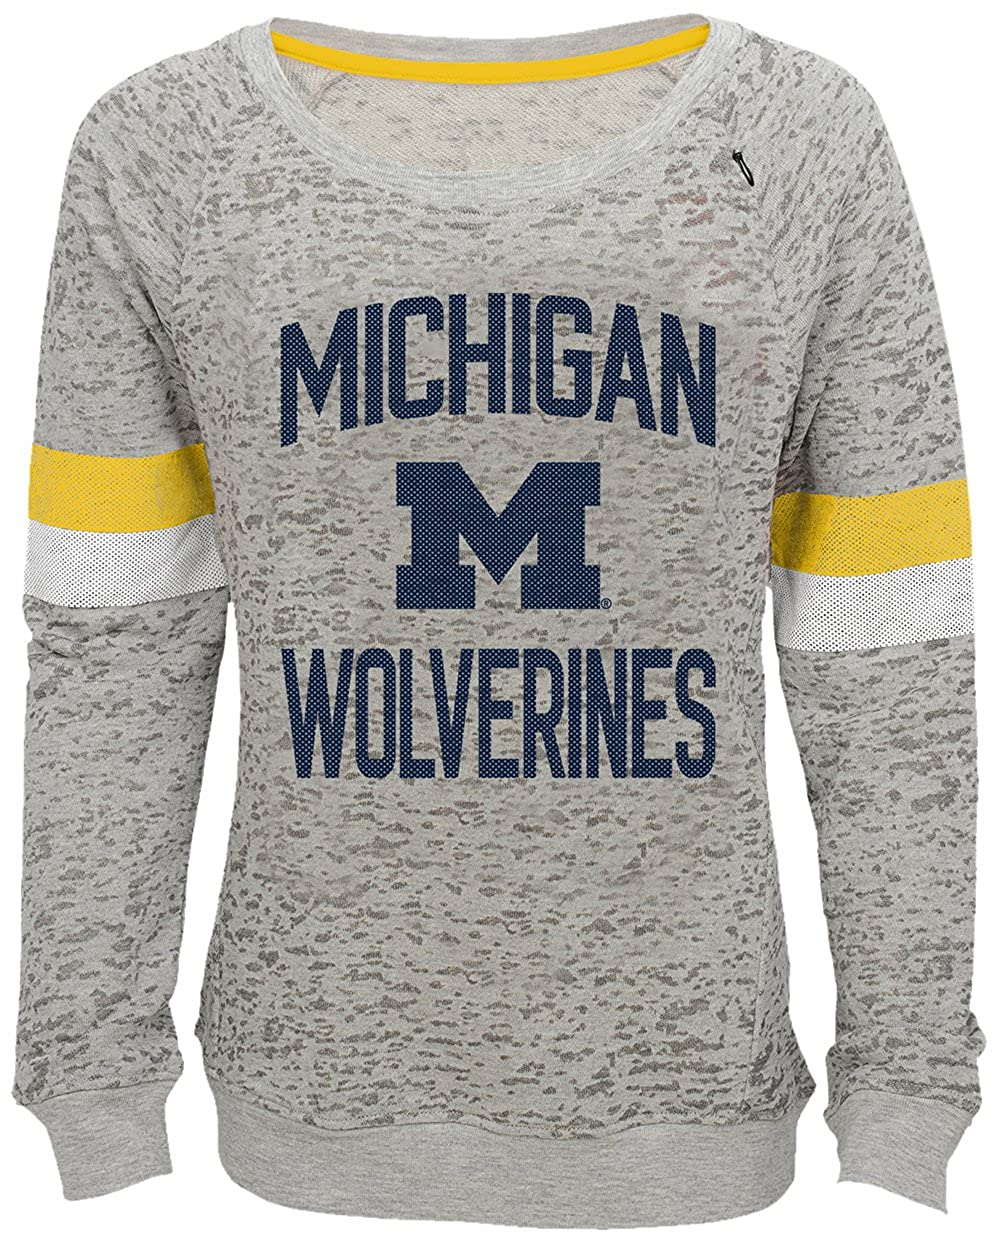 Outerstuff NCAA Michigan Wolverines Youth Girls Field Armor Dolman Sleeve Top Youth Girls Small 7-8 Heather Grey